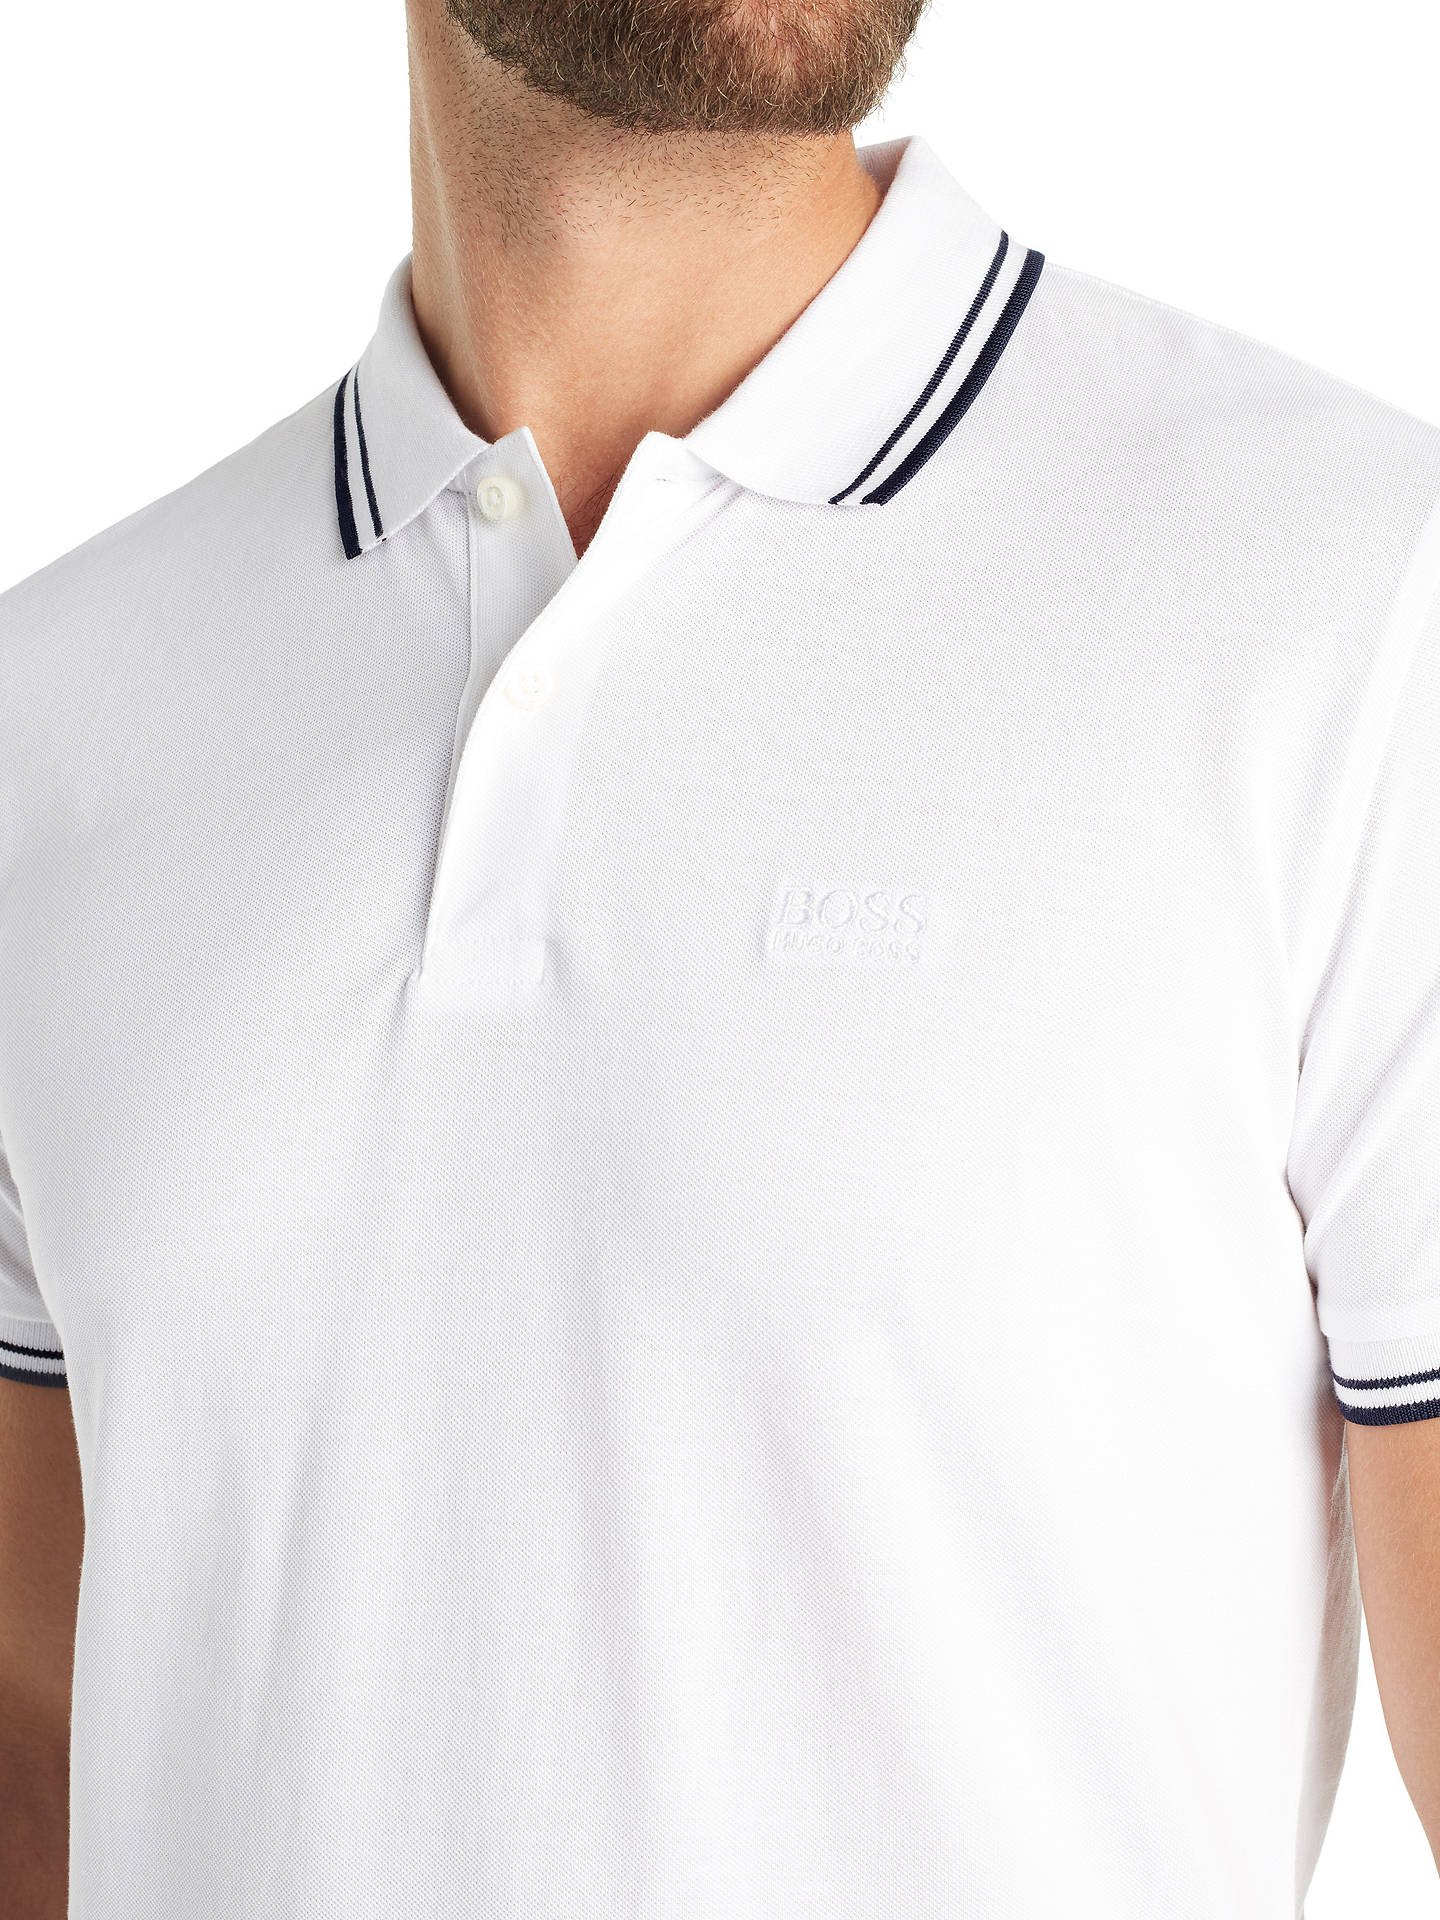 Buy BOSS Parlay Short Sleeve Tipped Polo Shirt, White, S Online at johnlewis.com